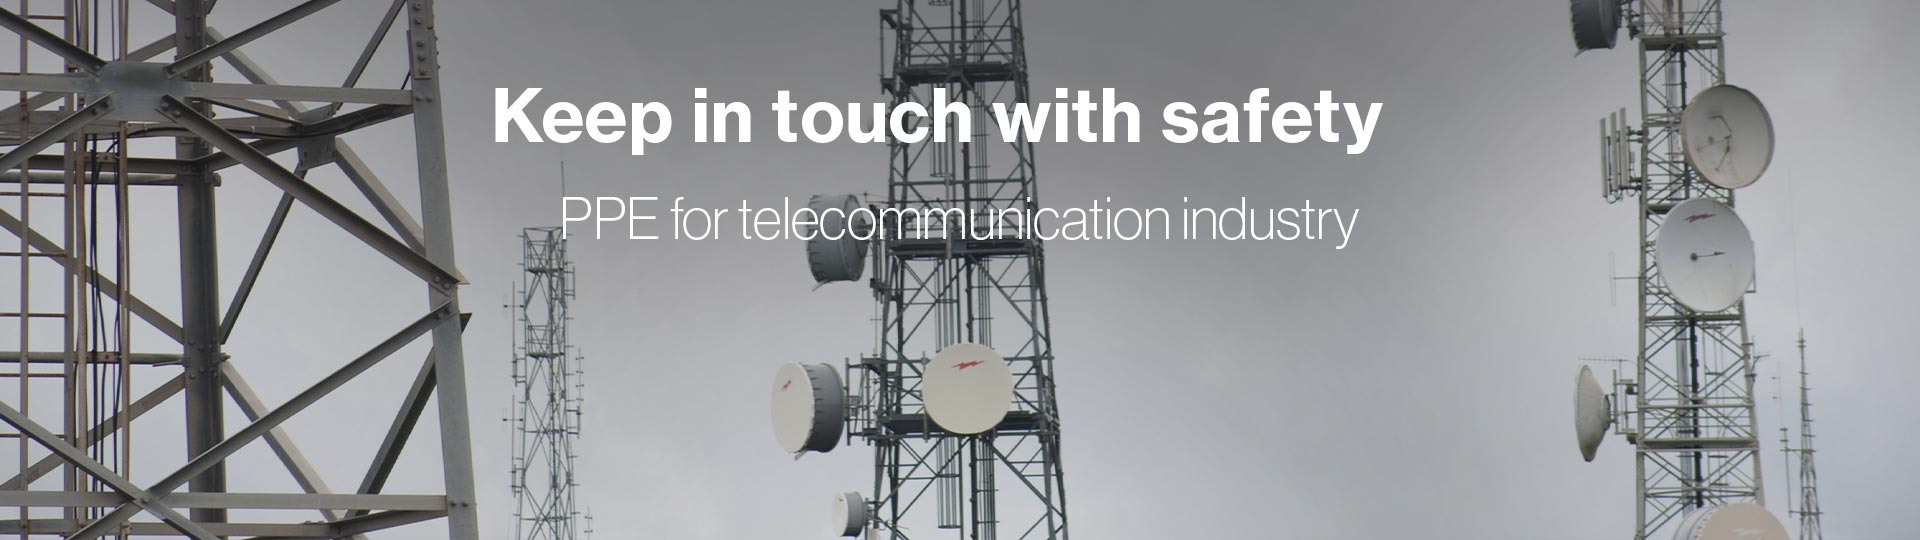 PPE perfectly suited to telecoms industry